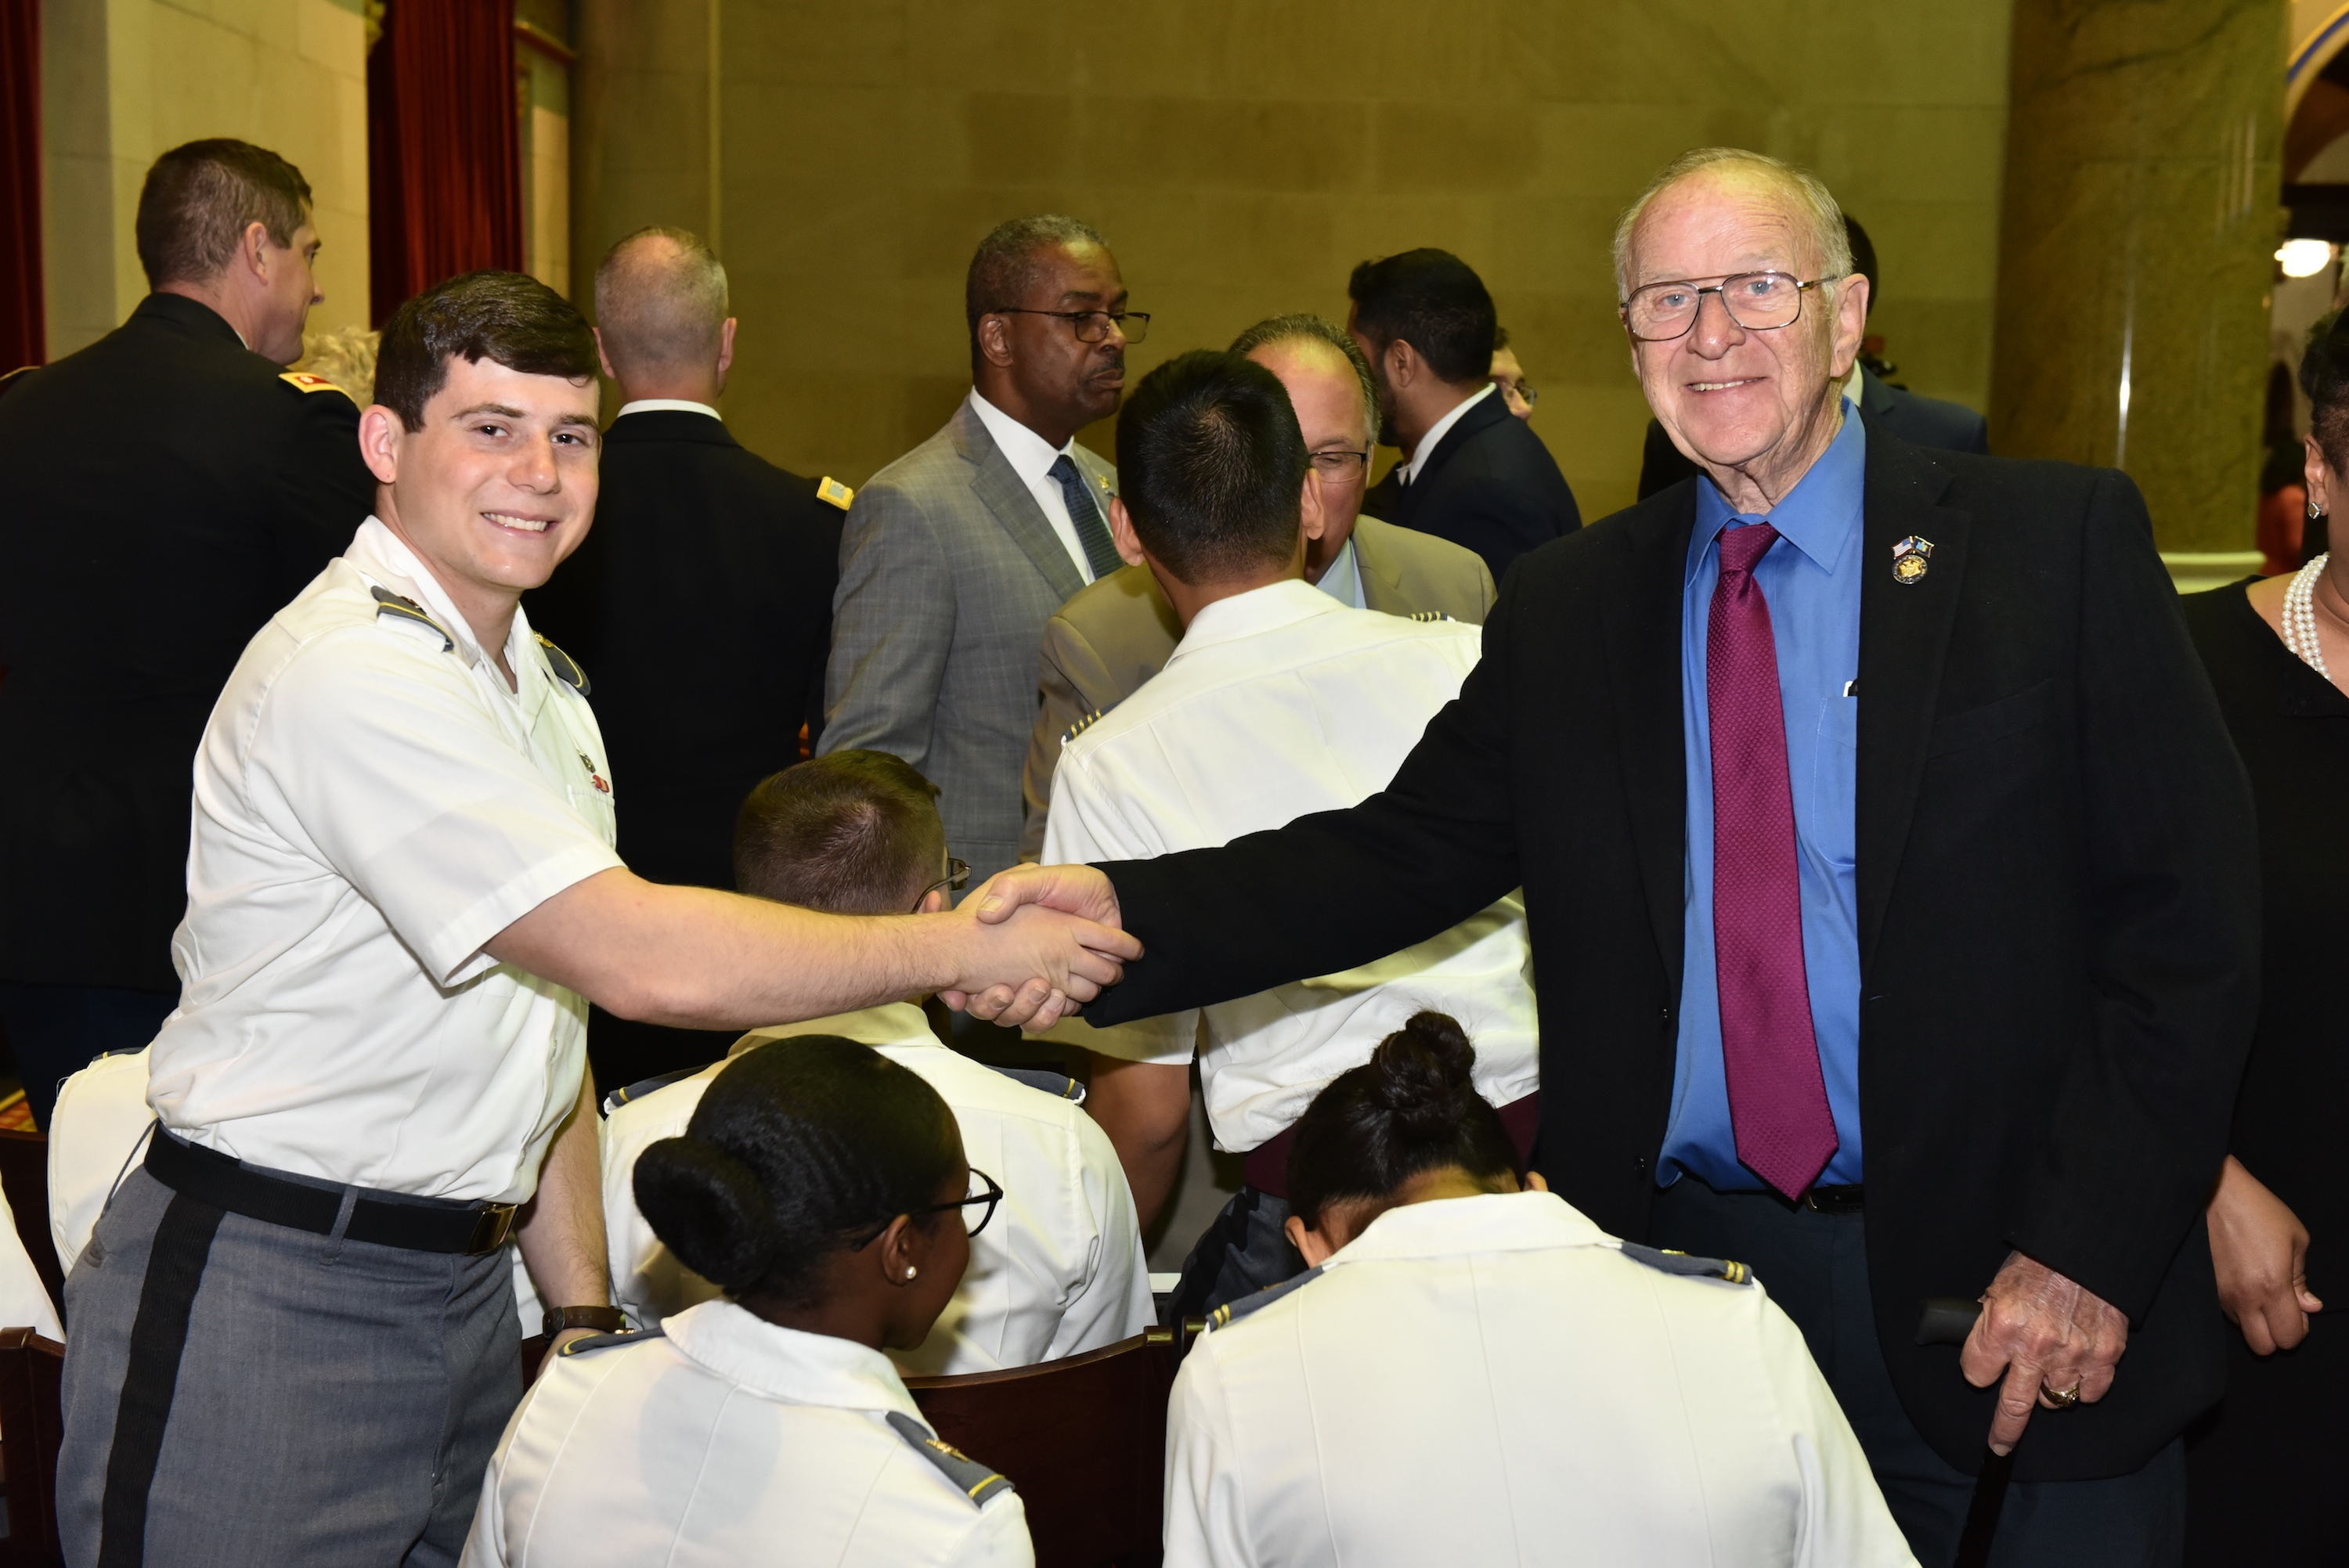 Assemblyman Dave McDonough (R,C,I-Merrick) welcomes West Point Cadet and constituent Matthew Montera to the Assembly Chamber Wednesday, May 1.